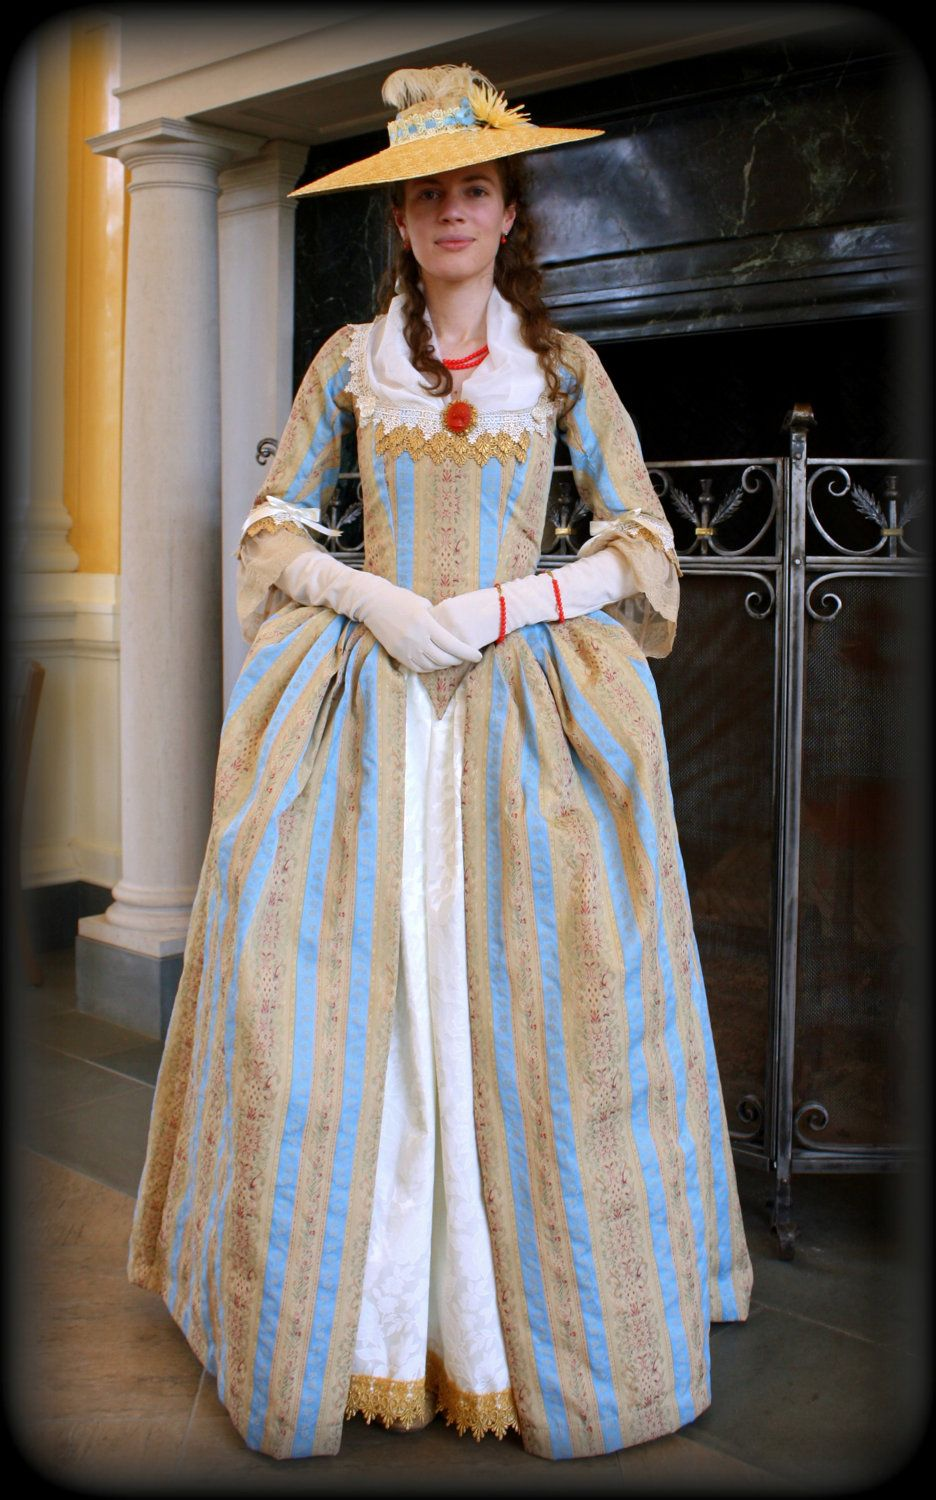 Teen colonial clothing pics #8